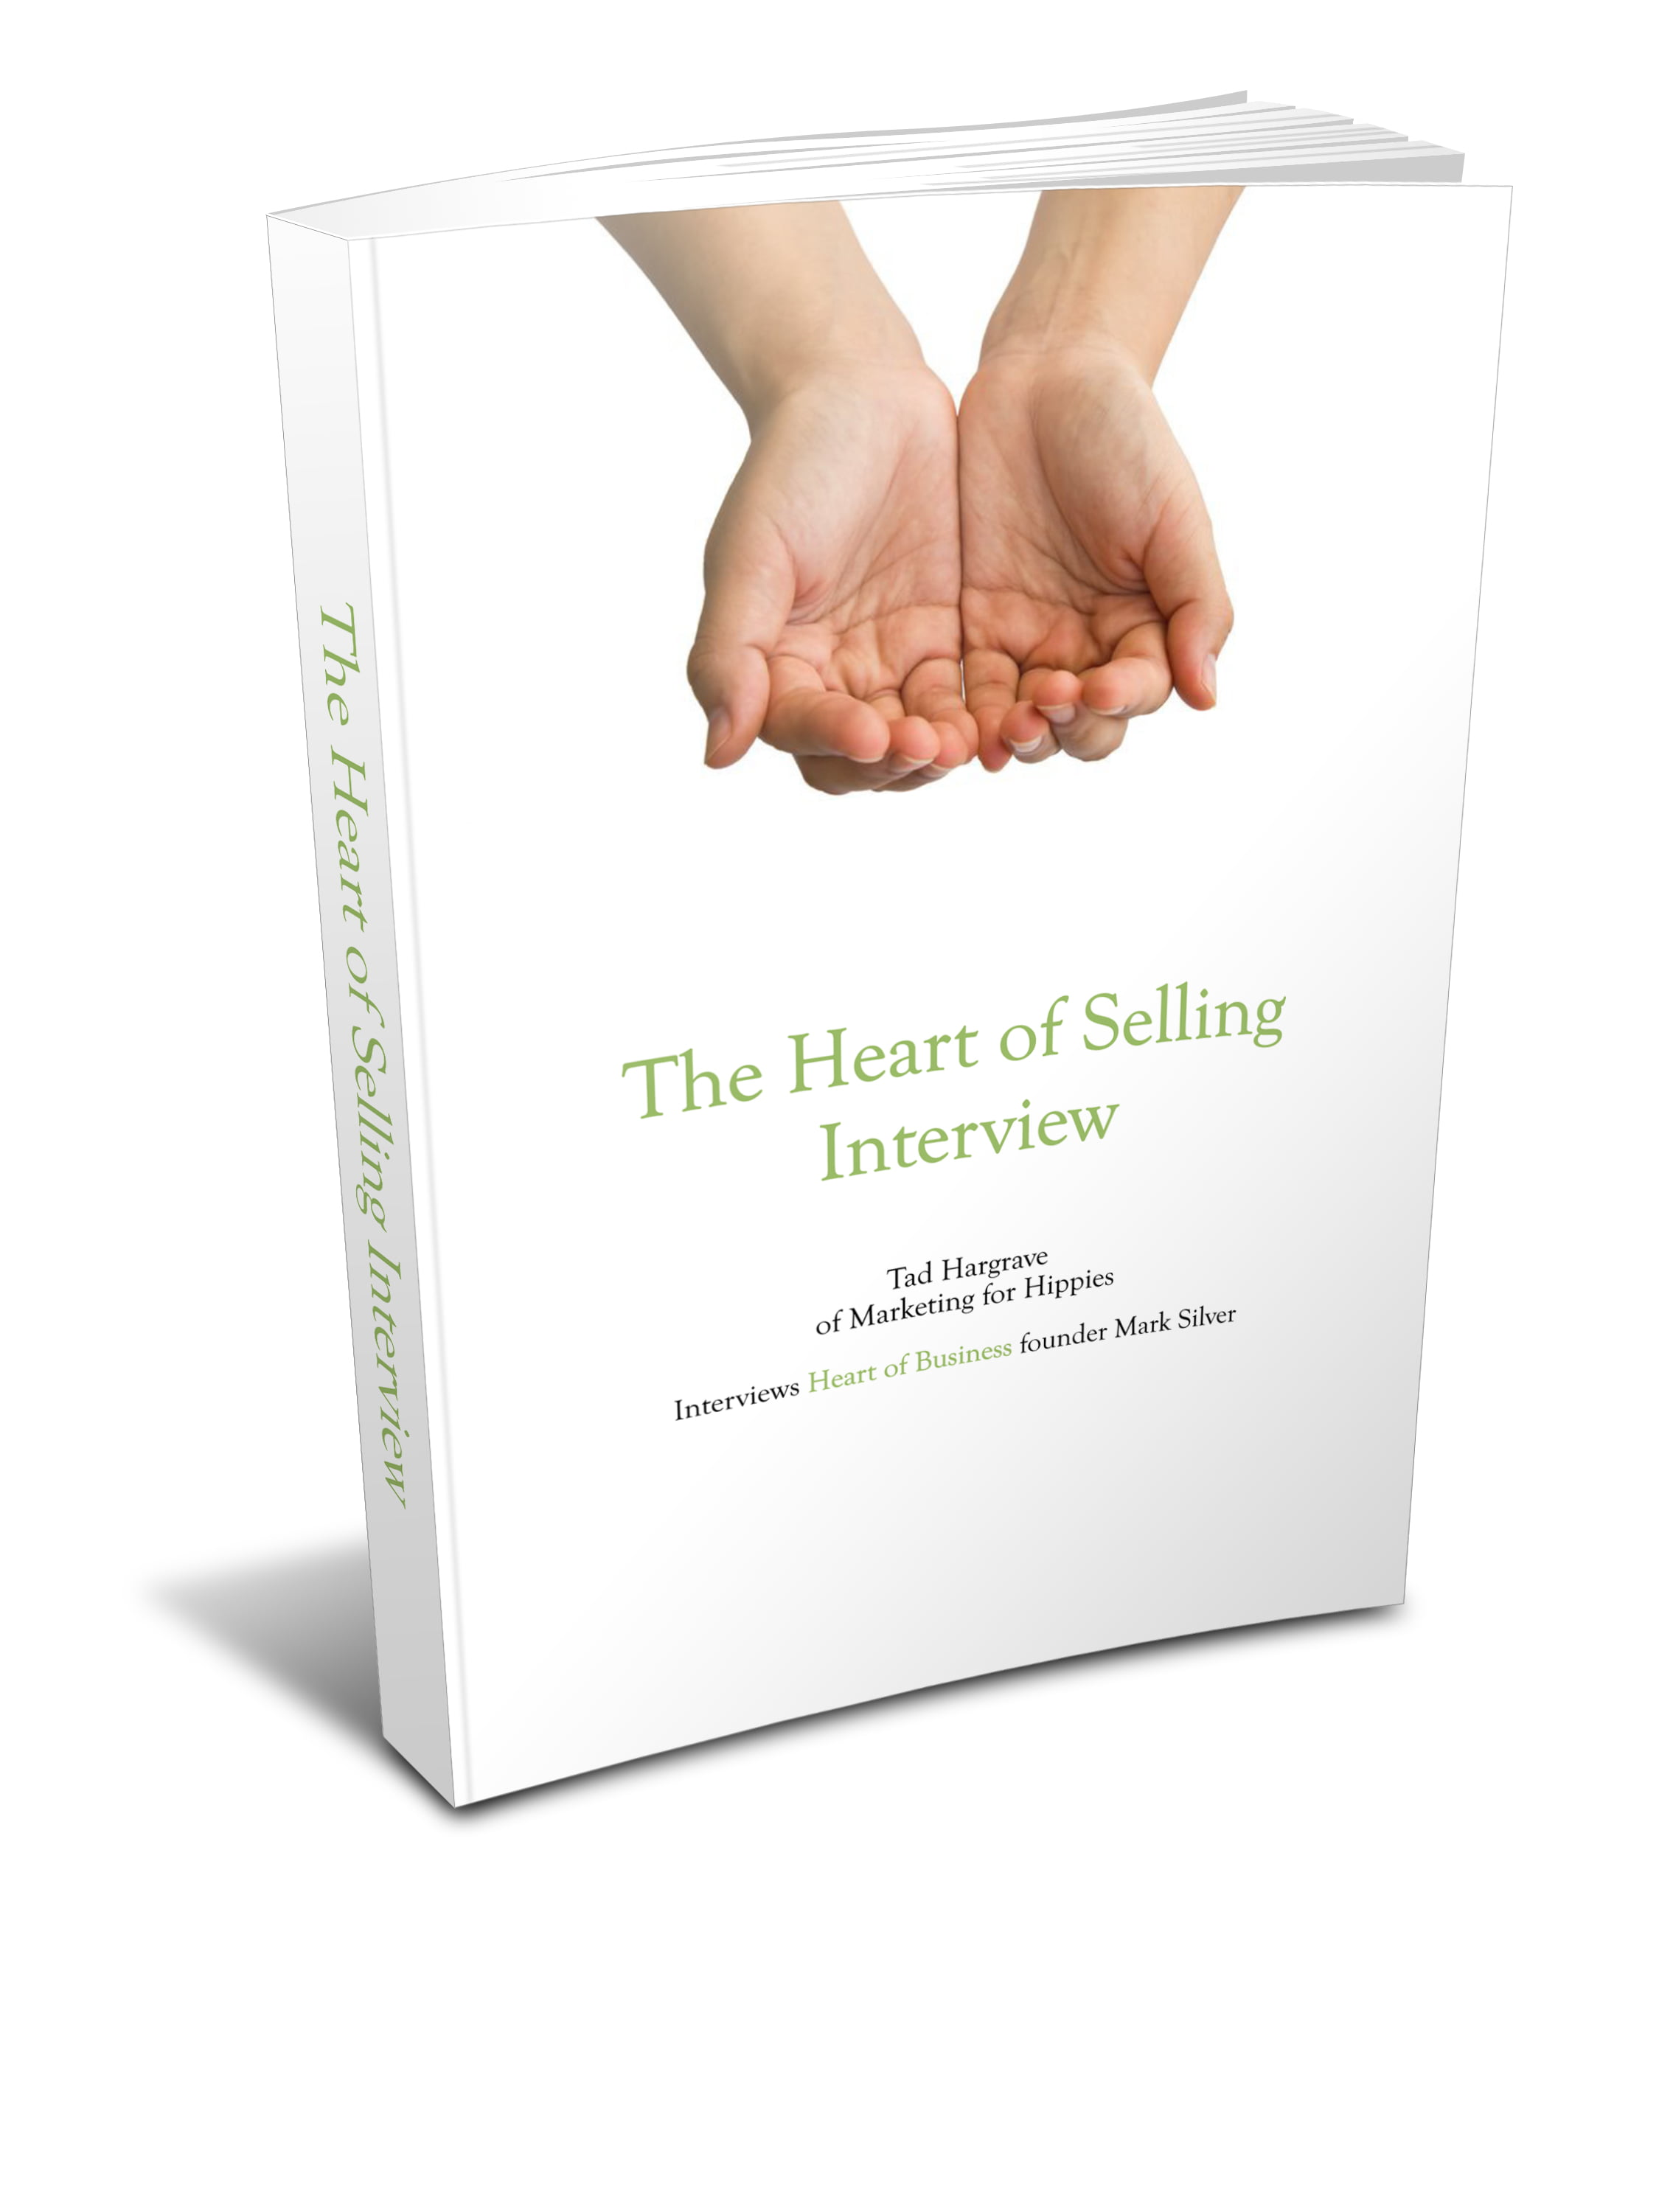 The-Heart-of-Selling-3D-Ebook-Cover-JPG